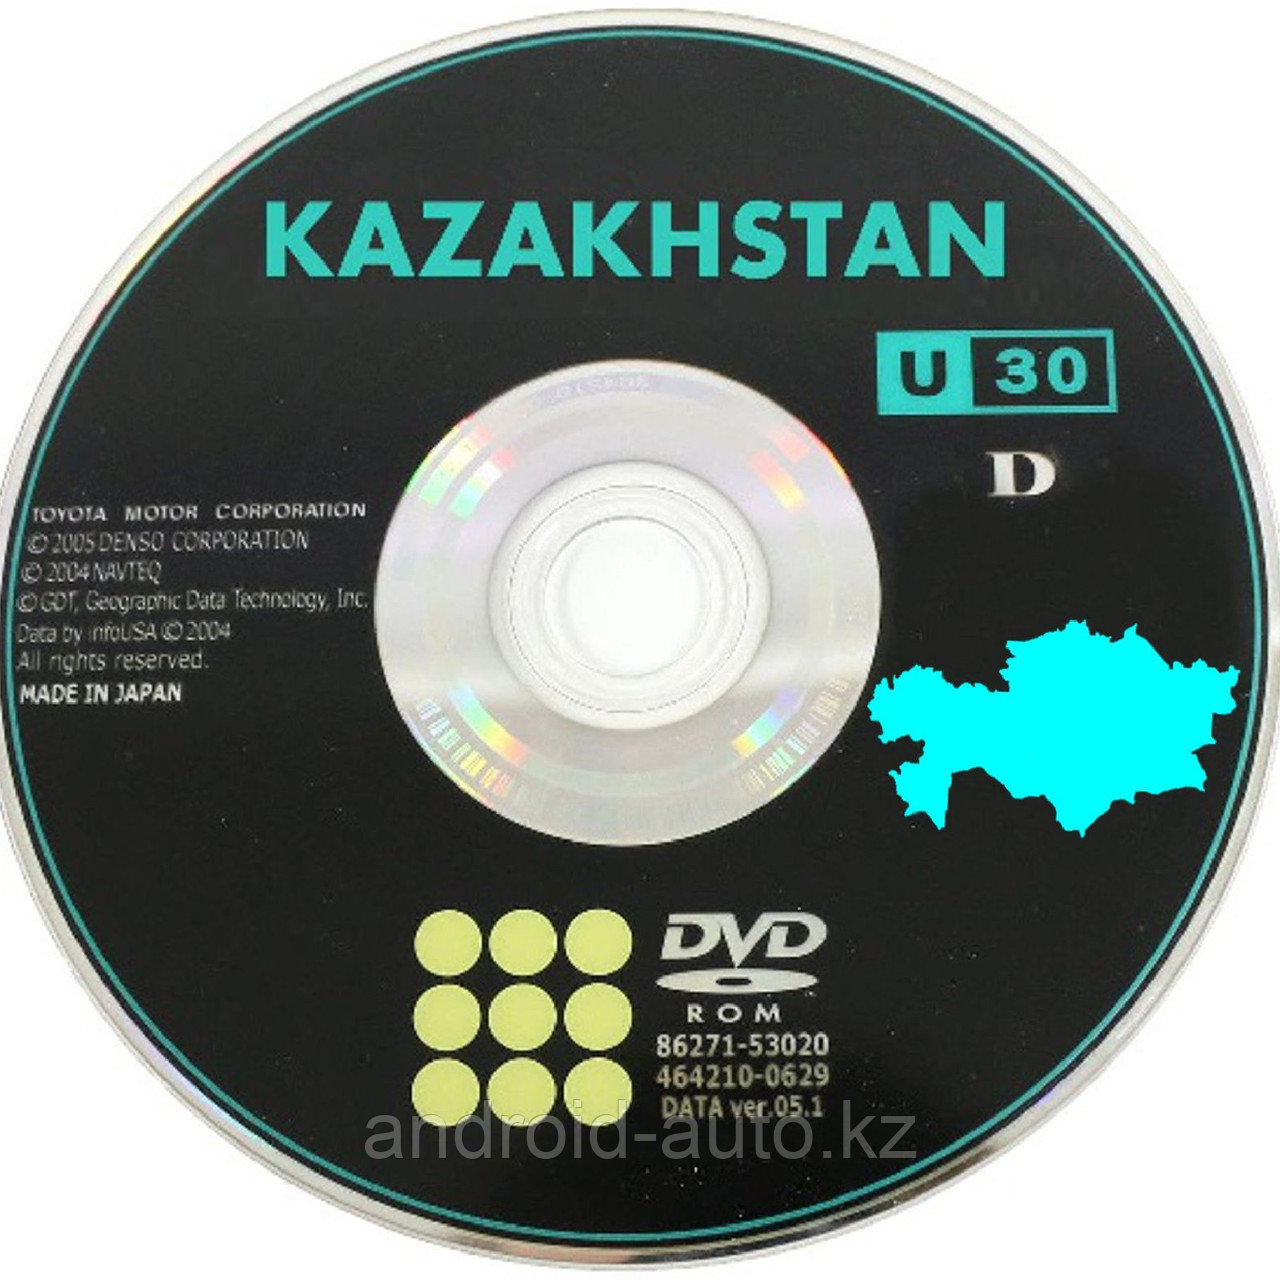 GEN-4 DVD NAVIGATION MAP of KAZAKHSTAN - (DENSO) TOYOTA LAND Cruiser 100 2003-2007